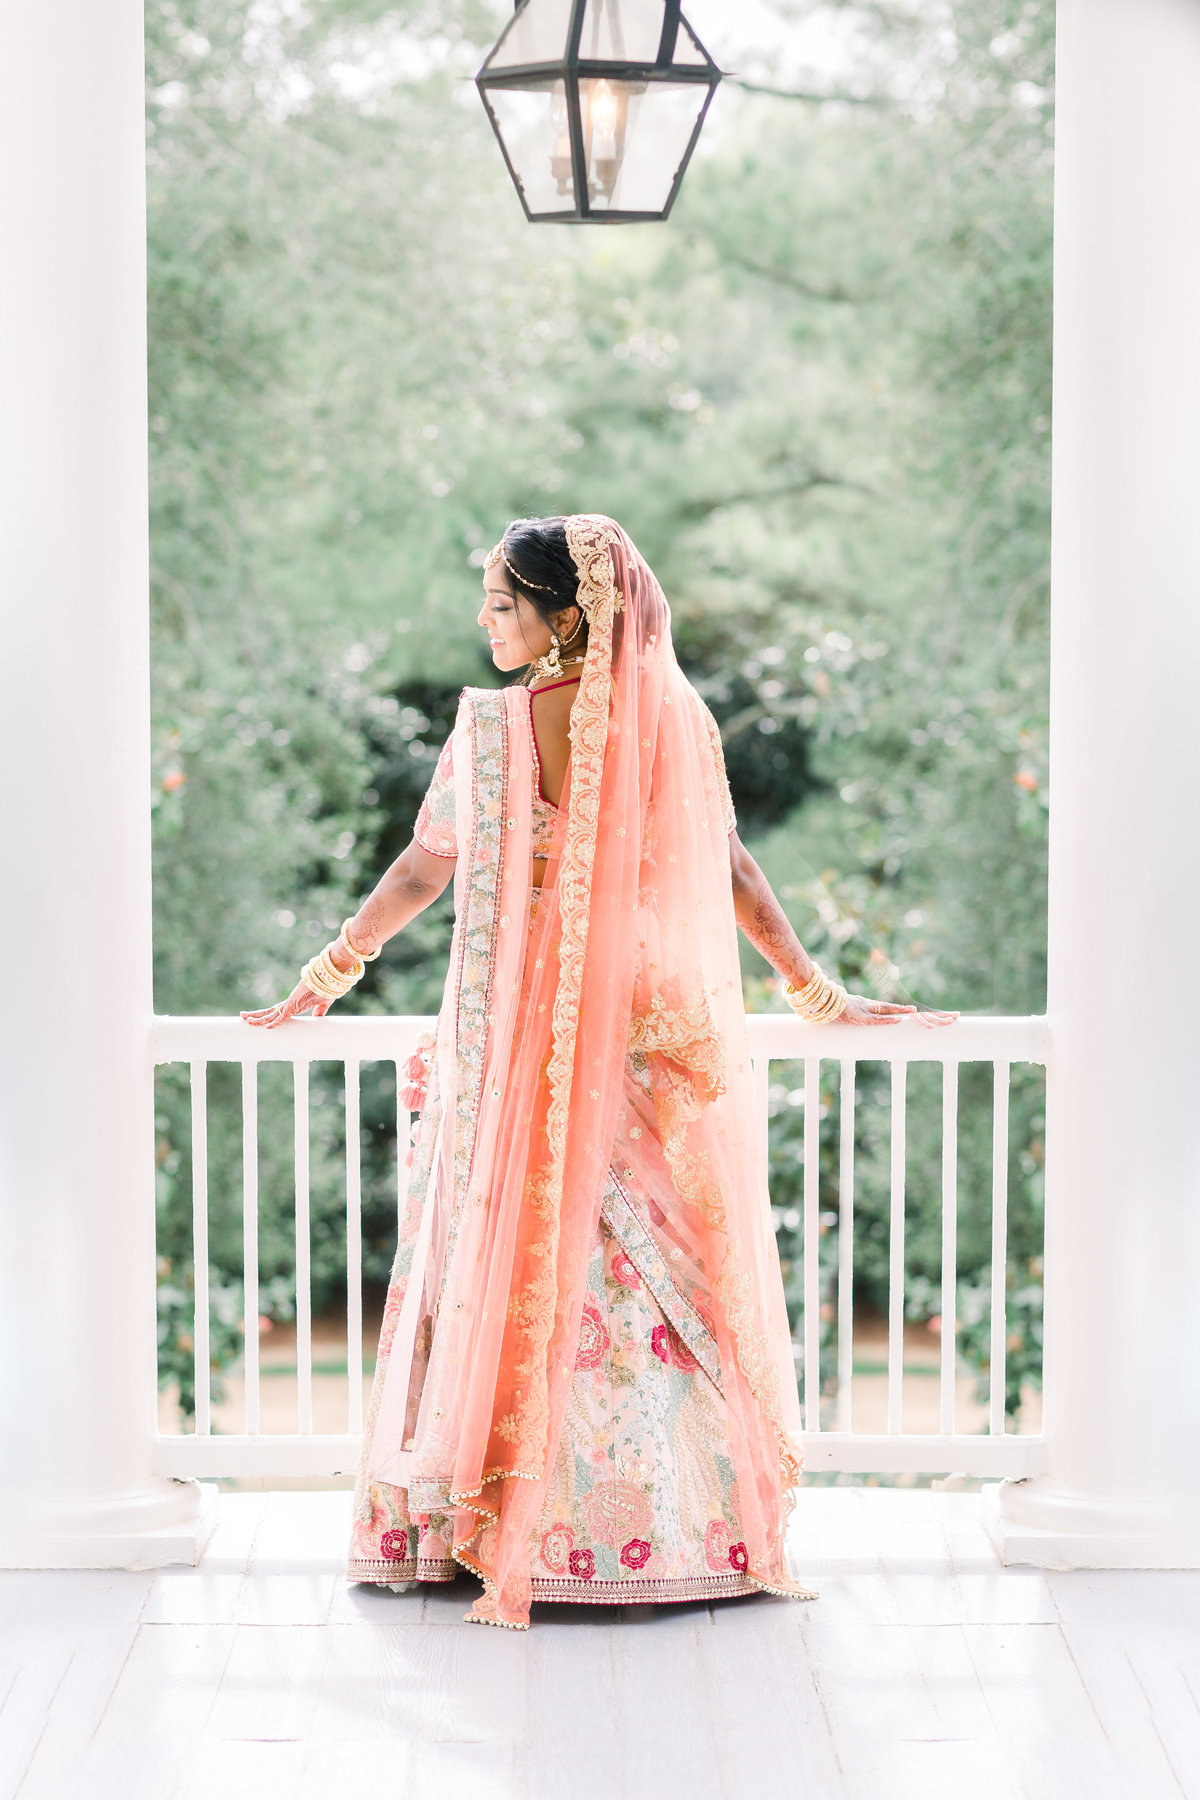 Raleigh NC Hindu Indian Wedding bride portraits at The Sutherland